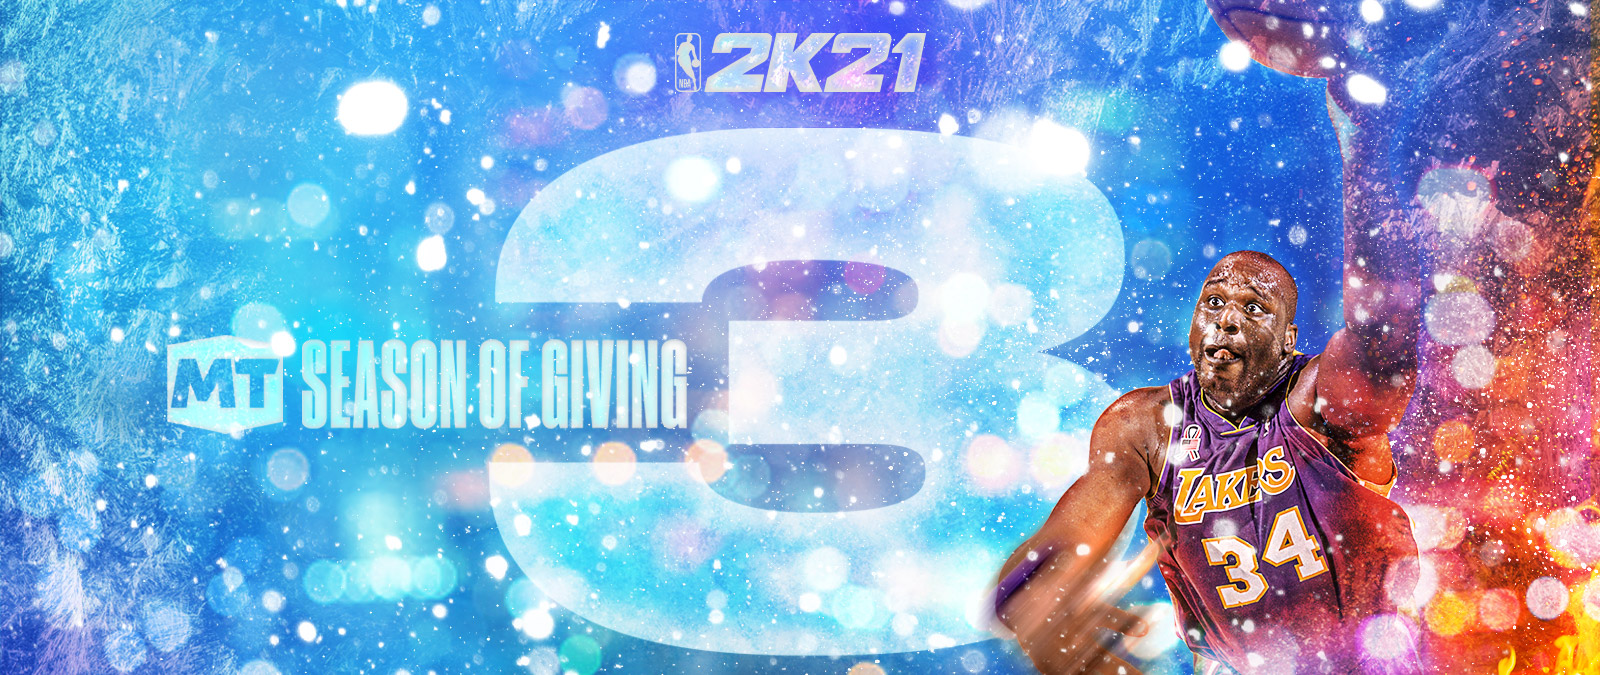 NBA 2k21, MT Season of Giving 3, Shaquille O'Neal goes for a slam dunk in a Lakers jersey.